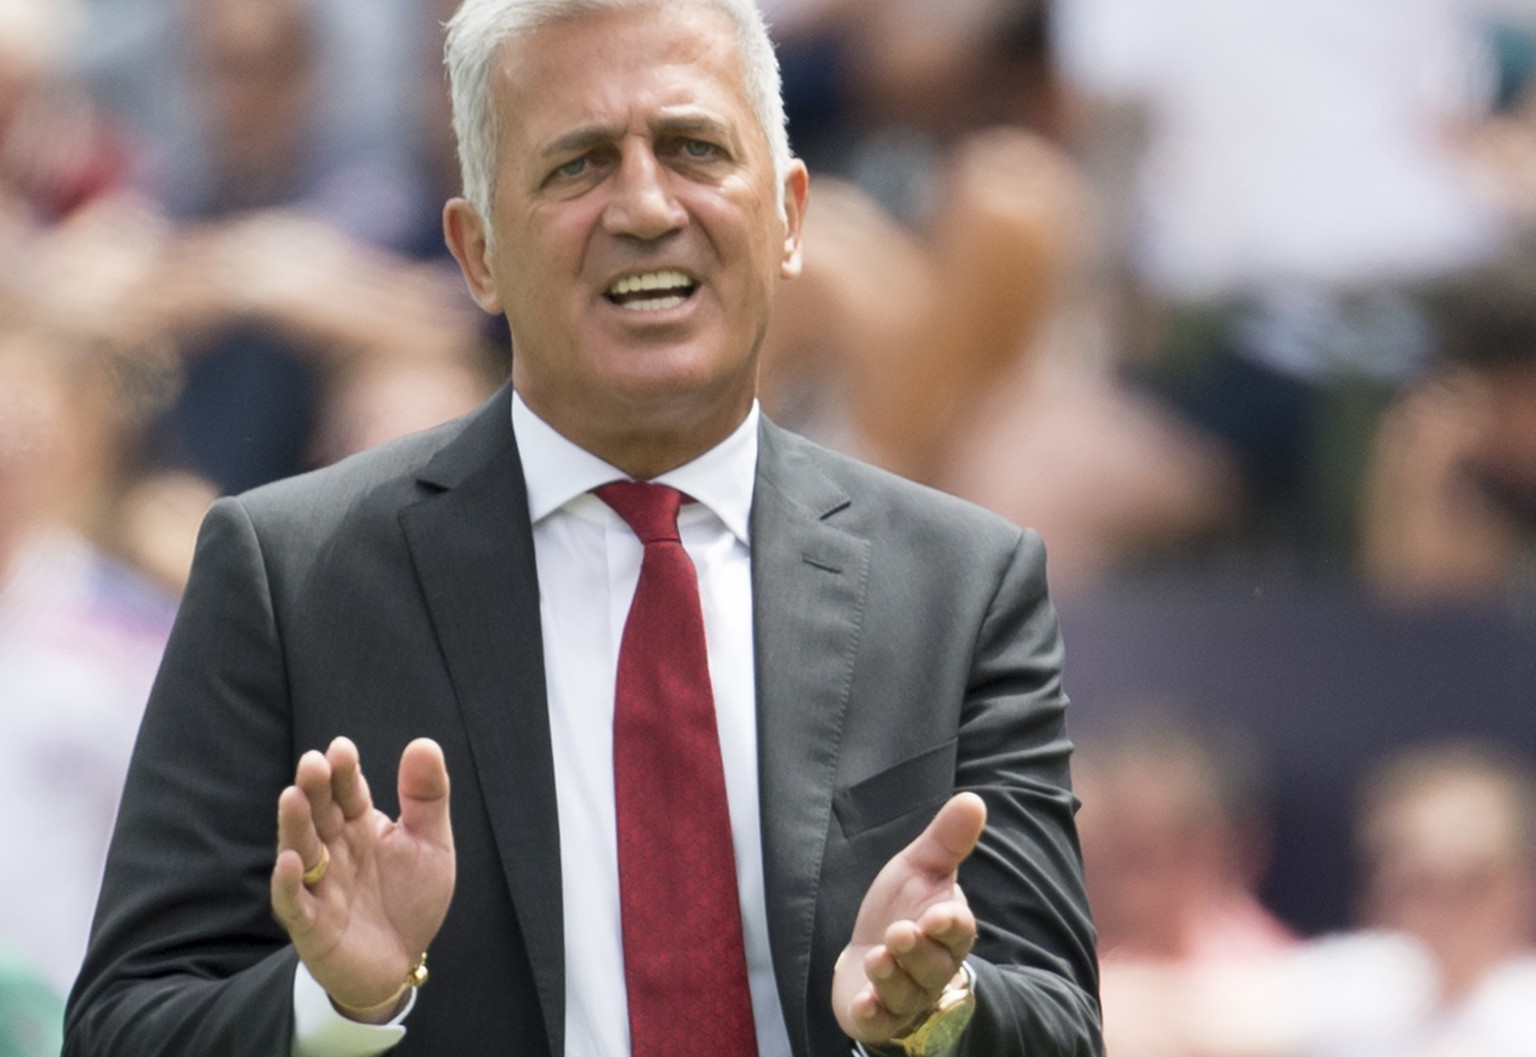 Switzerland's head coach Vladimir Petkovic during the UEFA Nations League third place soccer match between Switzerland and England at the D. Afonso Henriques stadium in Guimaraes, Portugal, on Sunday, June 9, 2019. (KEYSTONE/Jean-Christophe Bott)